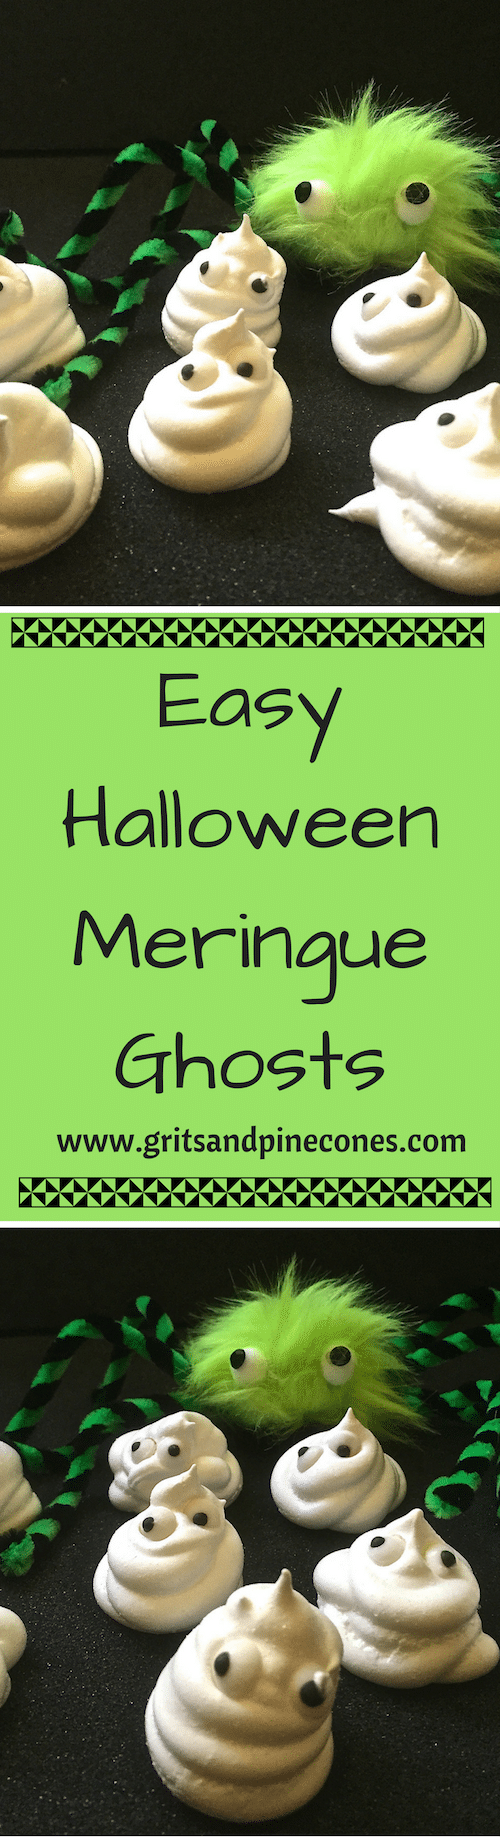 Scare up some smiles with this easy Halloween recipe for Halloween Meringue Ghosts! I'll show you there is no trick to making Halloween treats that your little monsters will love. #halloweenrecipes, #halloweenappetizers, #halloweenpartyfood, #halloweenpartyfoodideas, #halloweentreats, #halloweenfood, #easyhalloweentreats, #easyhalloweenfoodideas, #easyhalloweenrecipes,